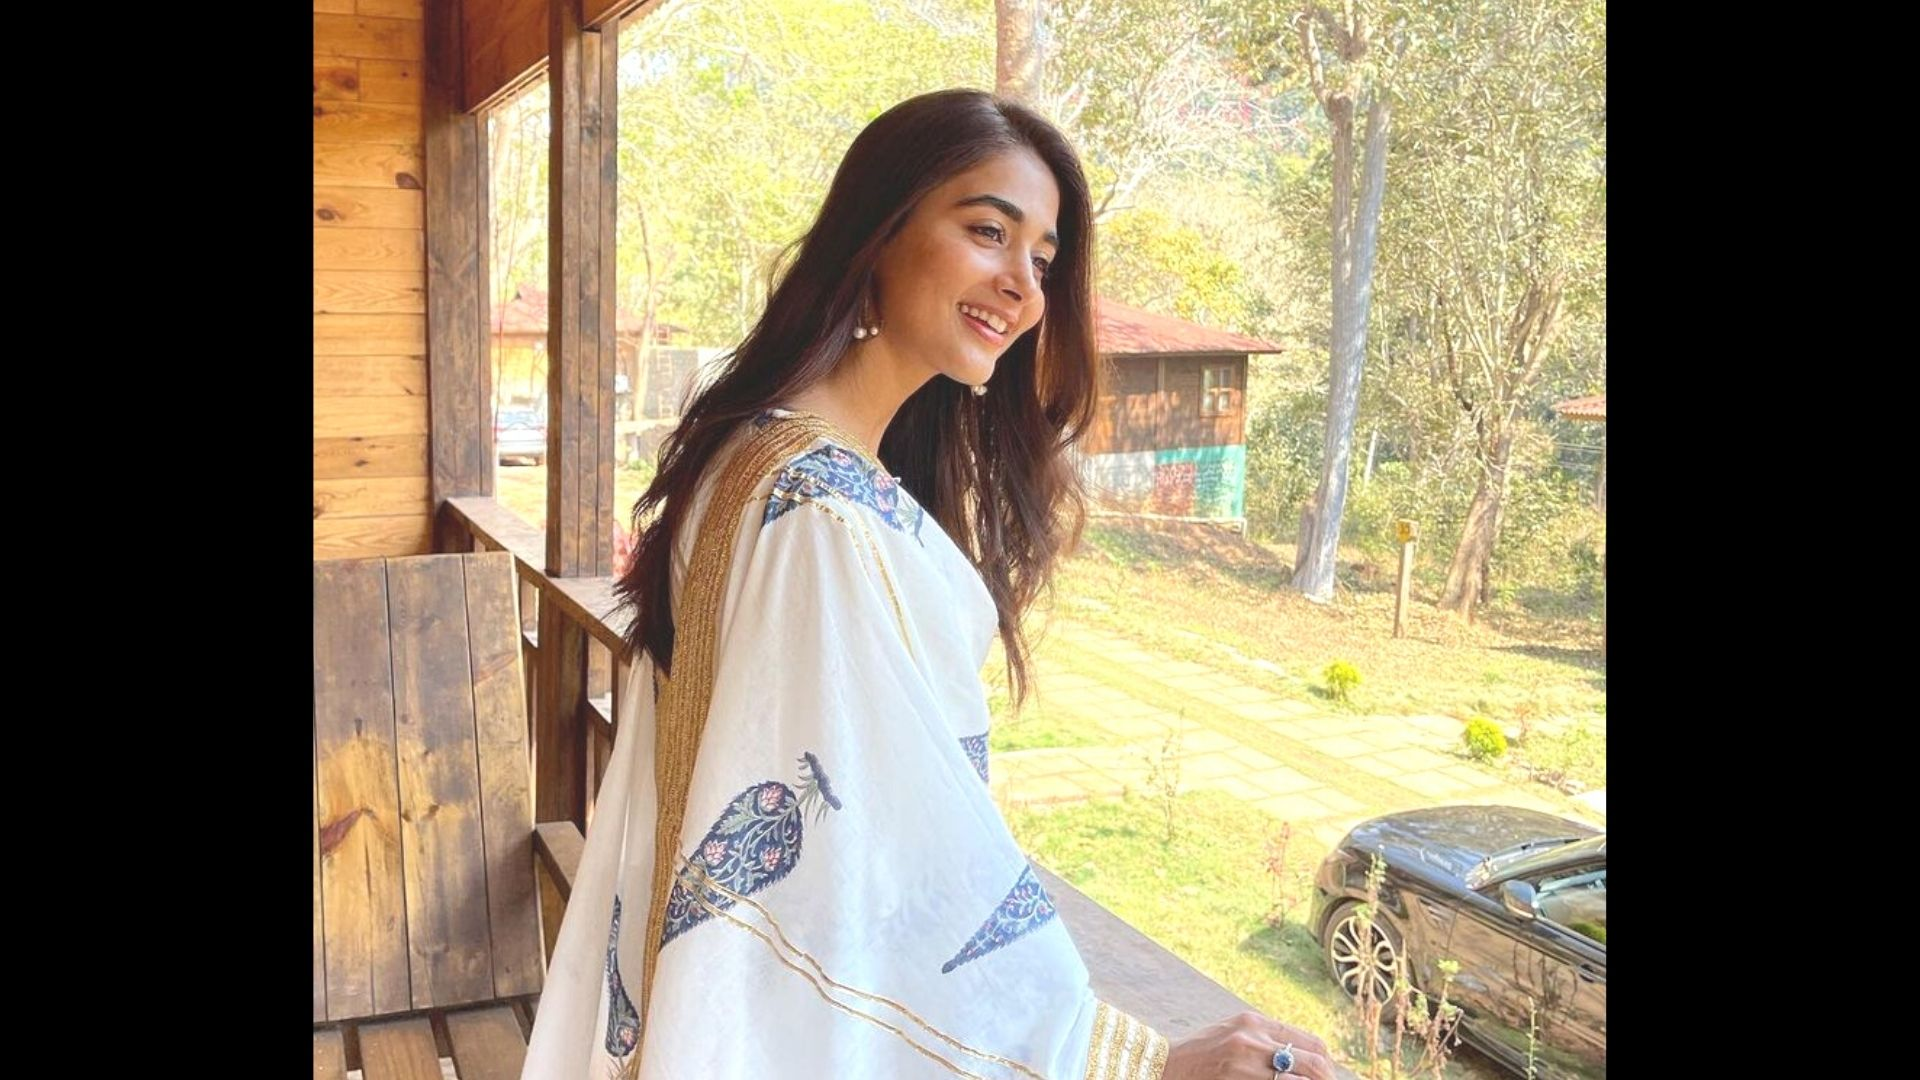 Pooja Hegde Birthday: Friends And Family Host A Surprise Birthday Bash For The Actress As She Turns 31